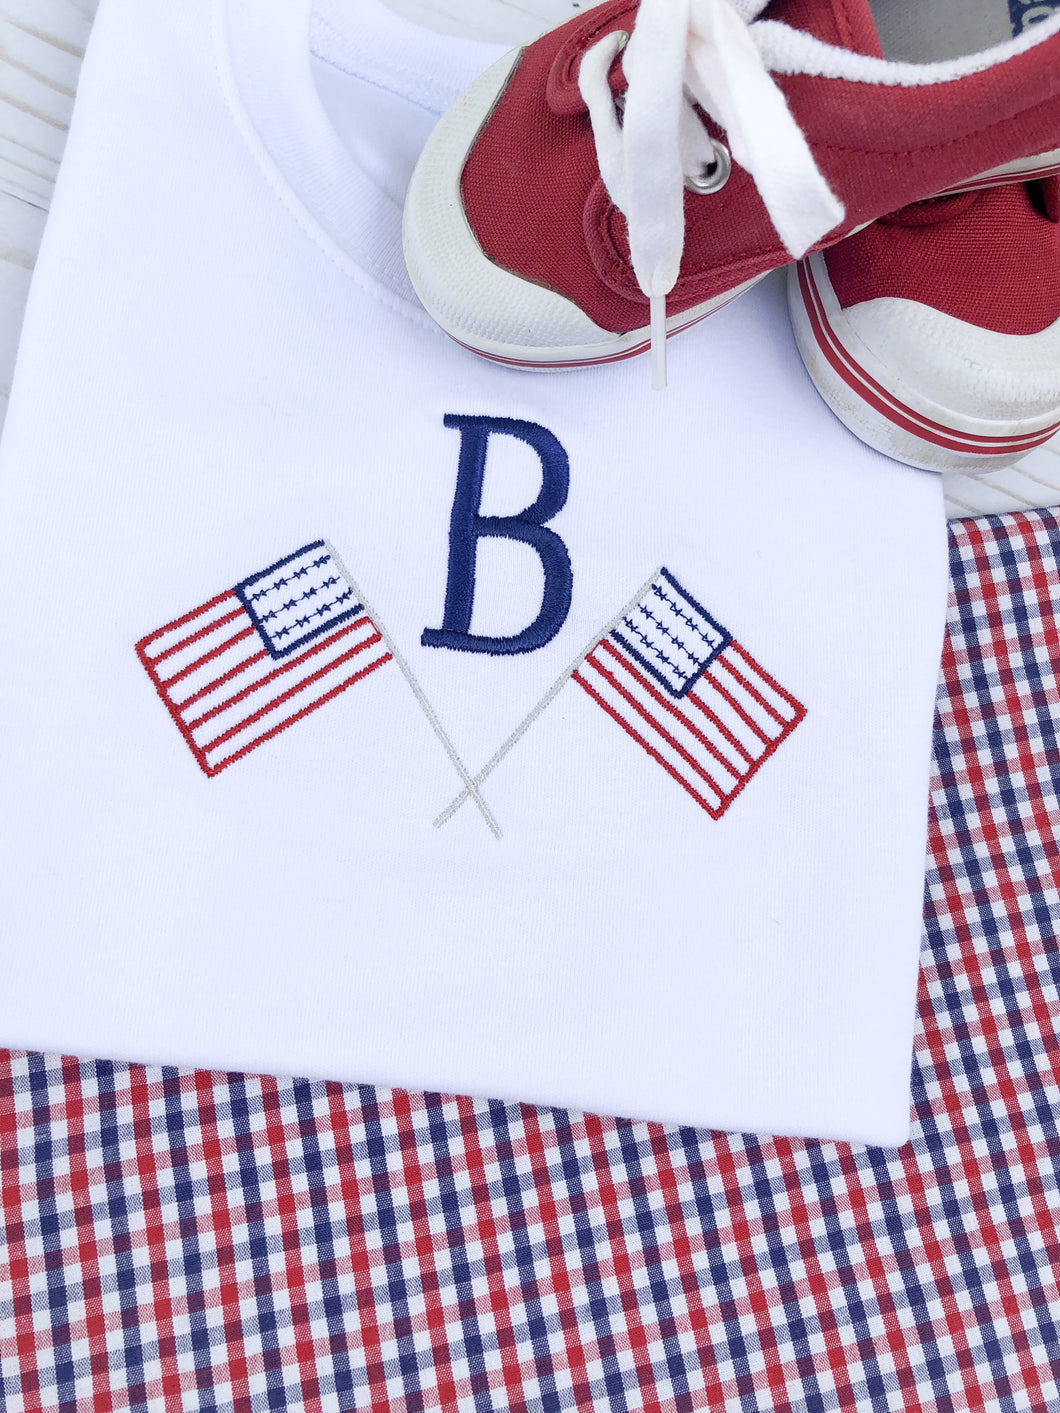 American Flag Monogram Shirt